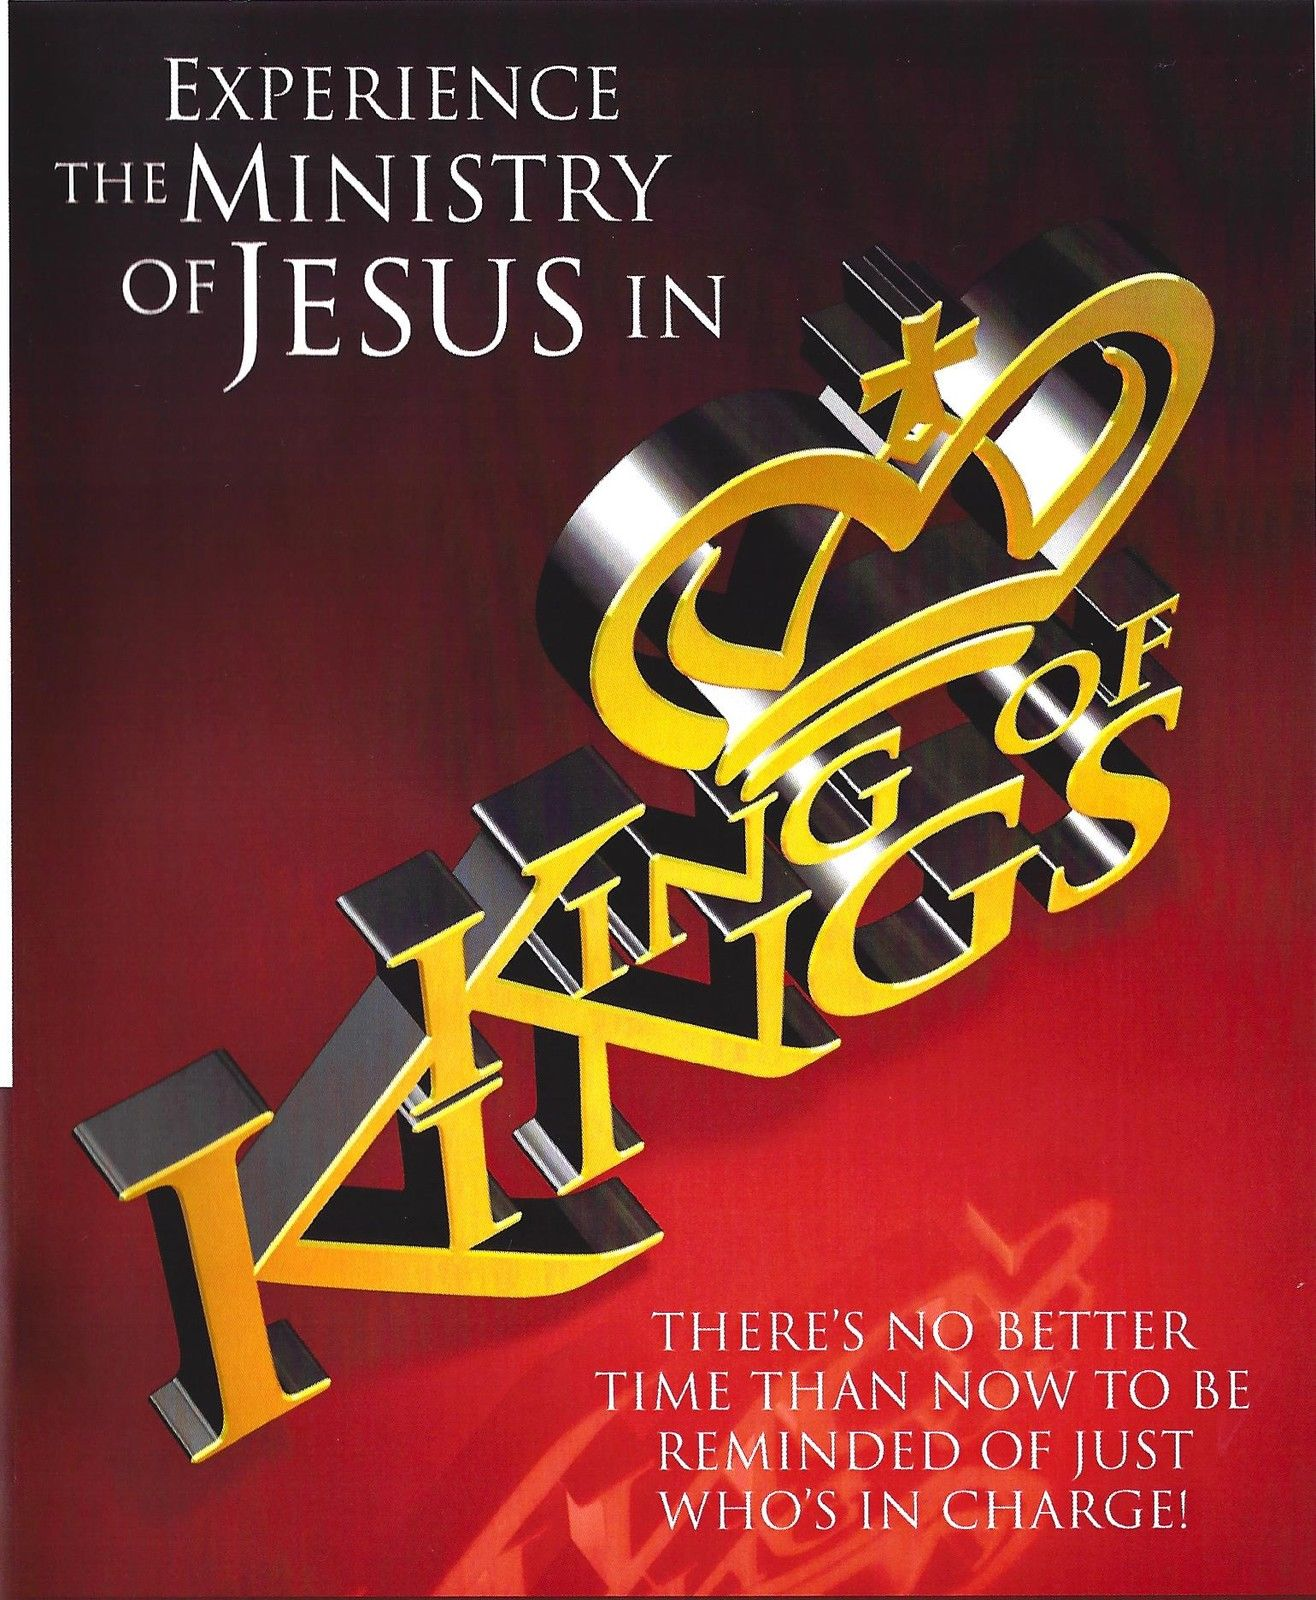 King of Kings 3 DVDs by TD Jakes